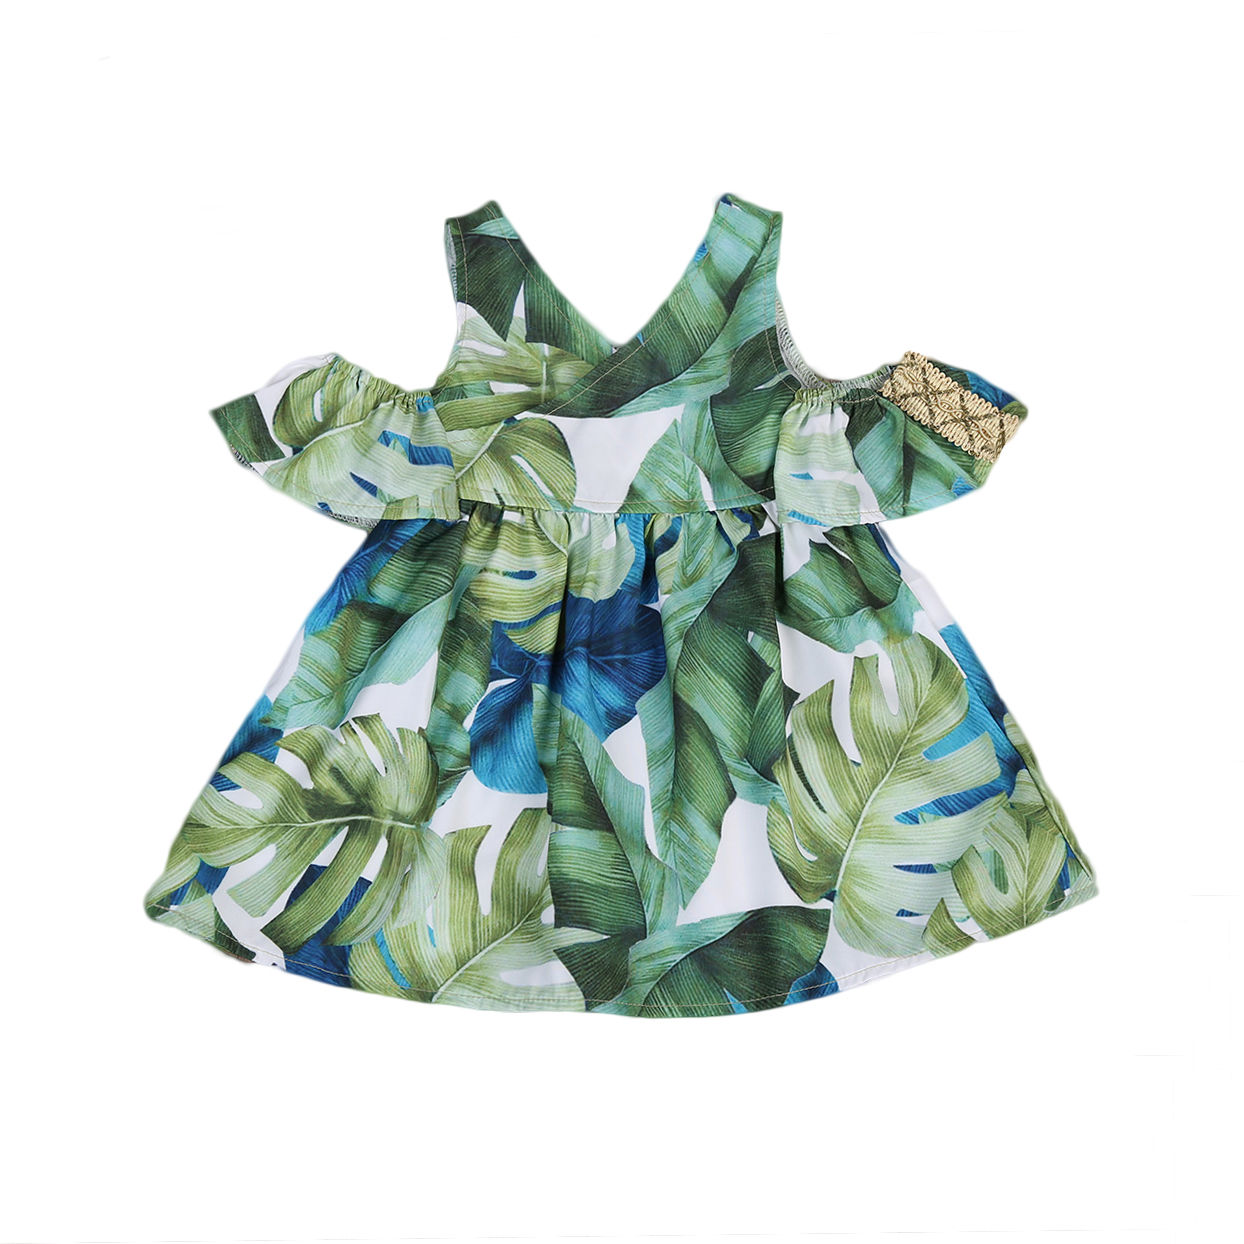 Toddler Baby Girls Outfits Clothes Off shoulder Green Leaves Print Dress 2017 Top Fashion Clothes